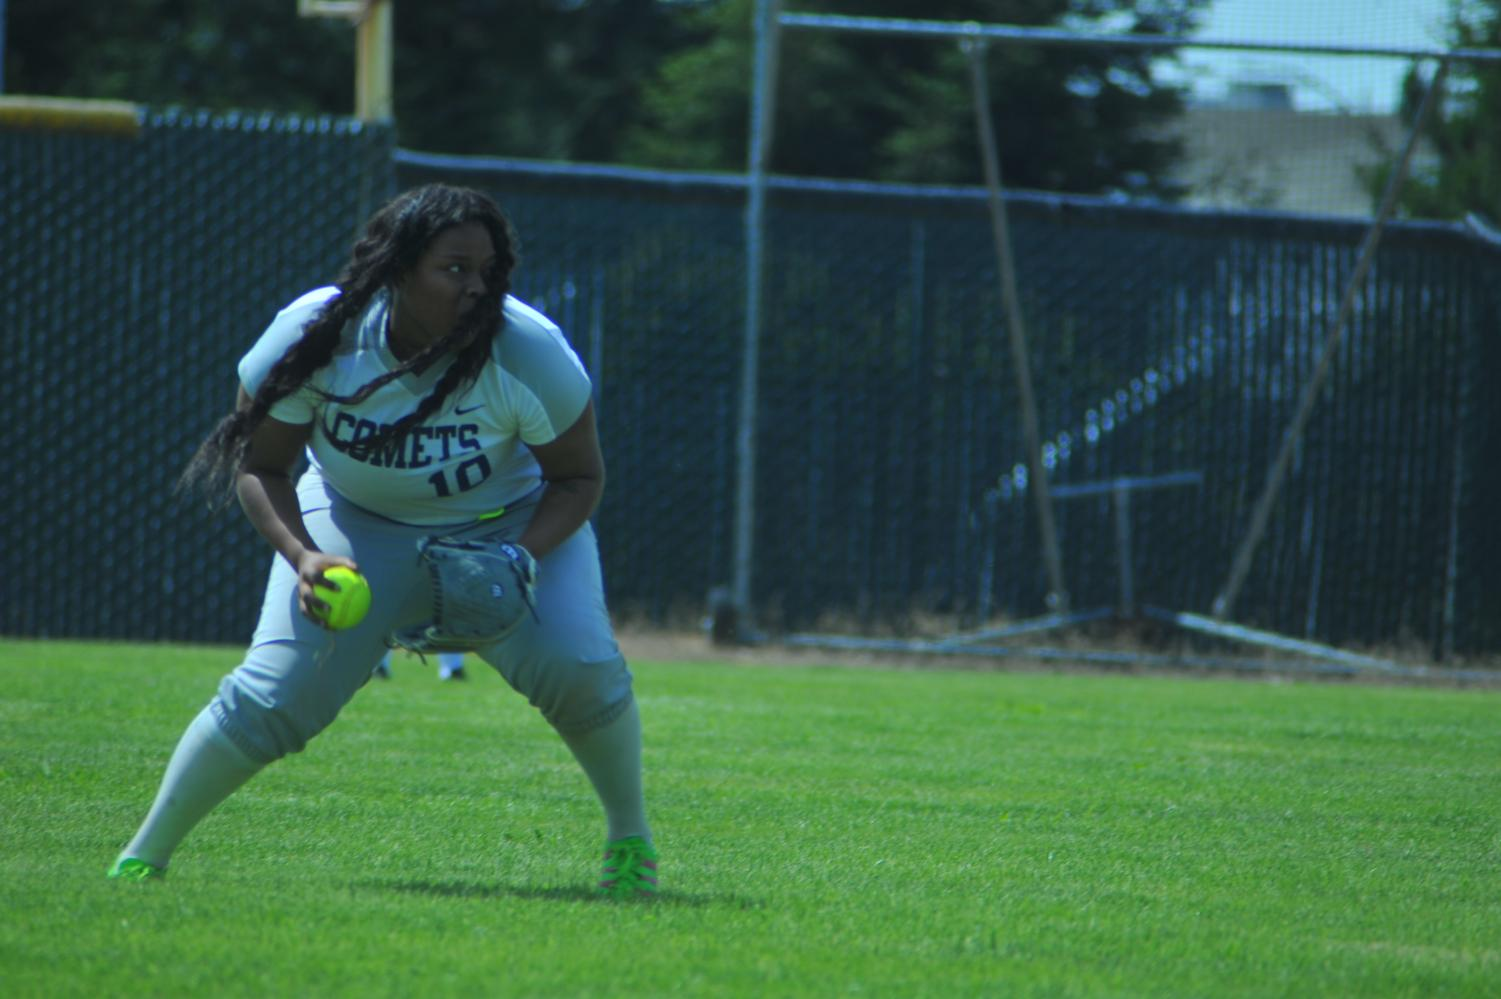 Comet infielder Brianna Williams picks up a pop up and gets ready to throw it  during Contra Costa College's 21-2 loss against Mendocino College on April 19.